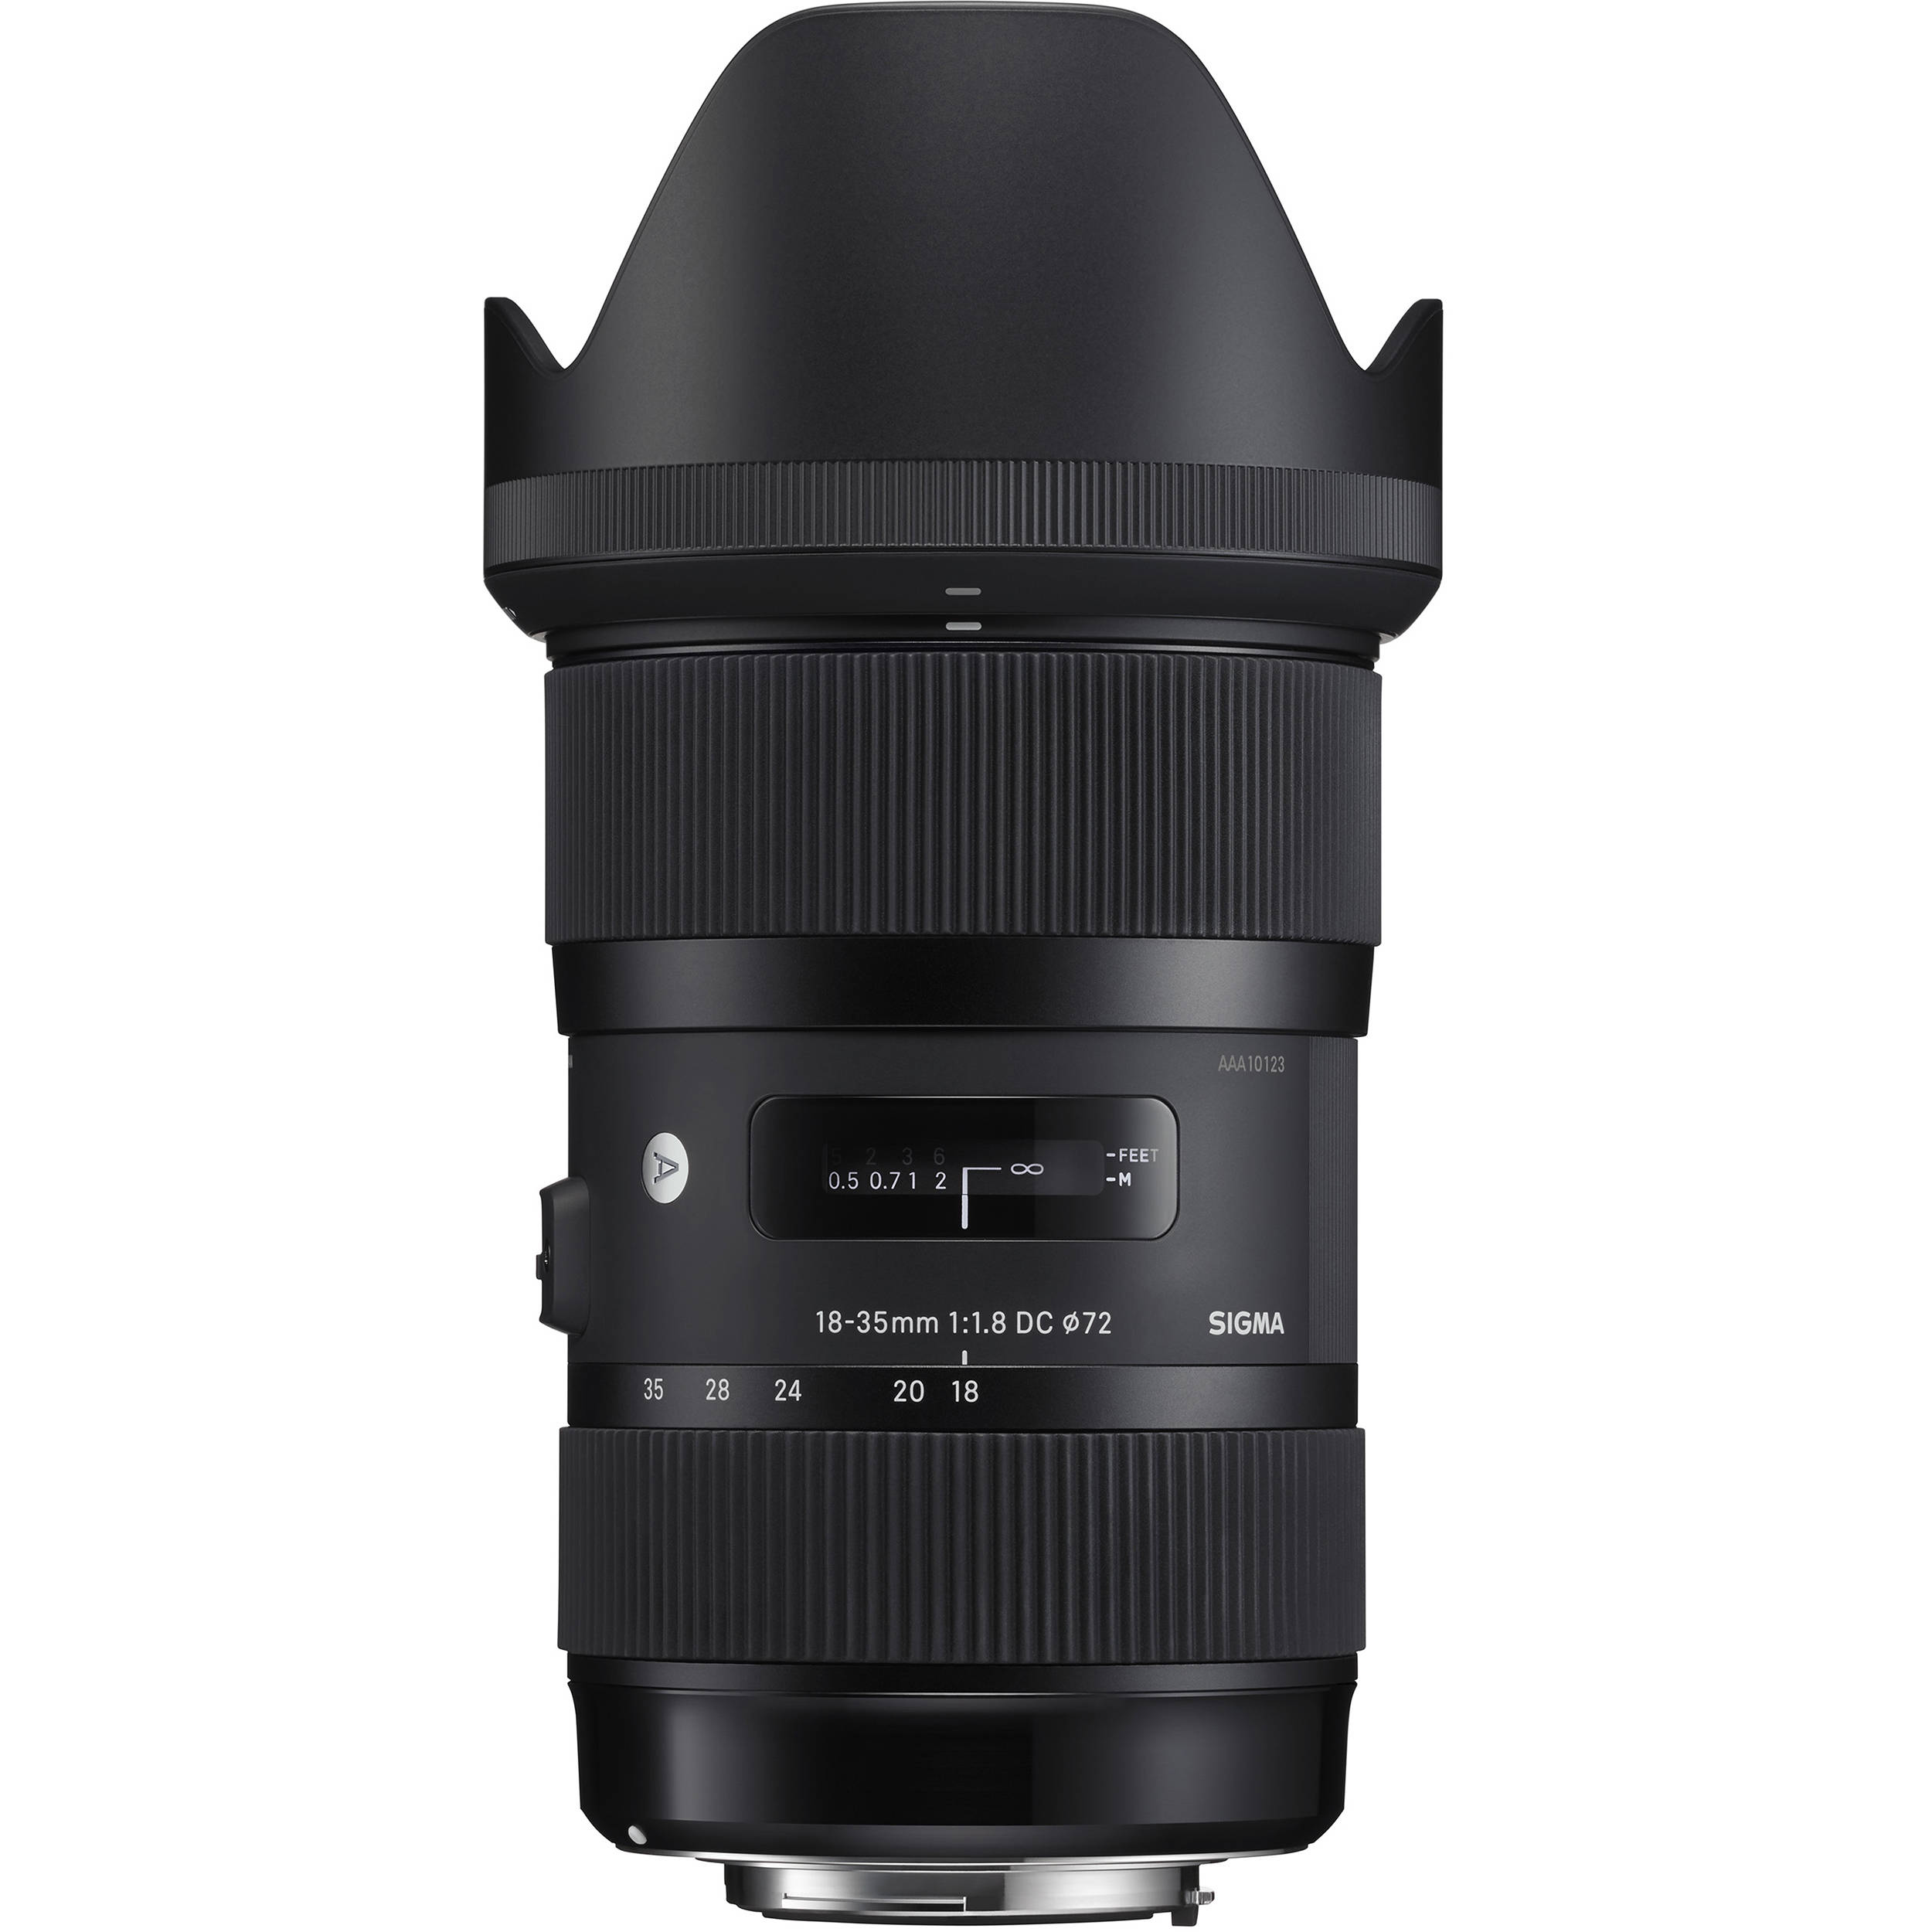 Sigma 18-35mm f/1.8 DC HSM Art Lens for Sony A 210-205 B&H Photo